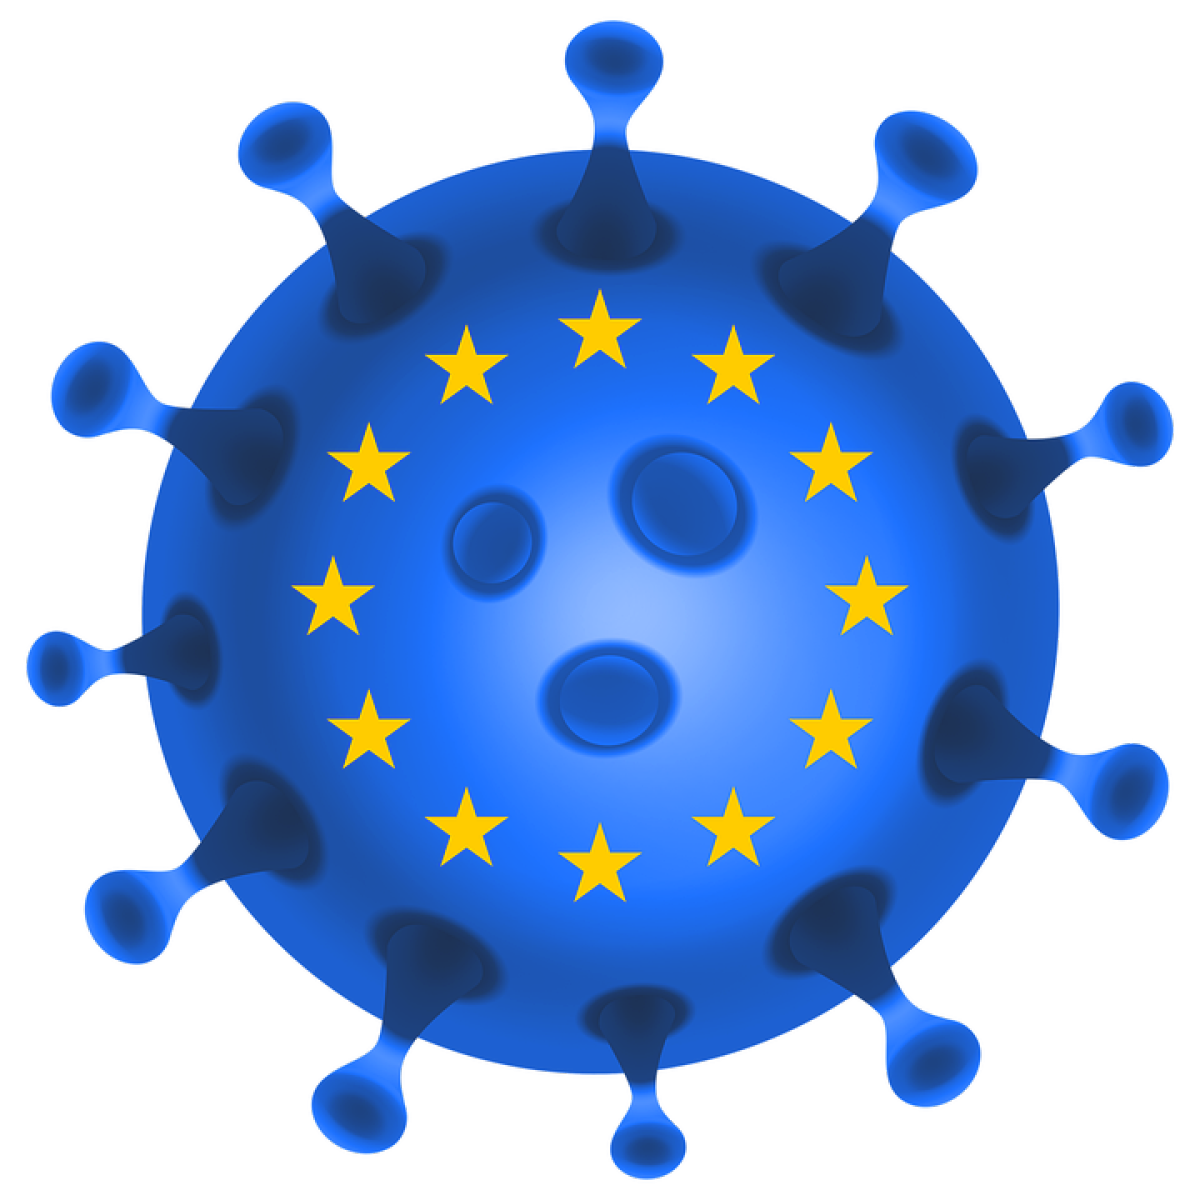 COVID-19 pandemic may prove to be the tipping point to European Union solidarity